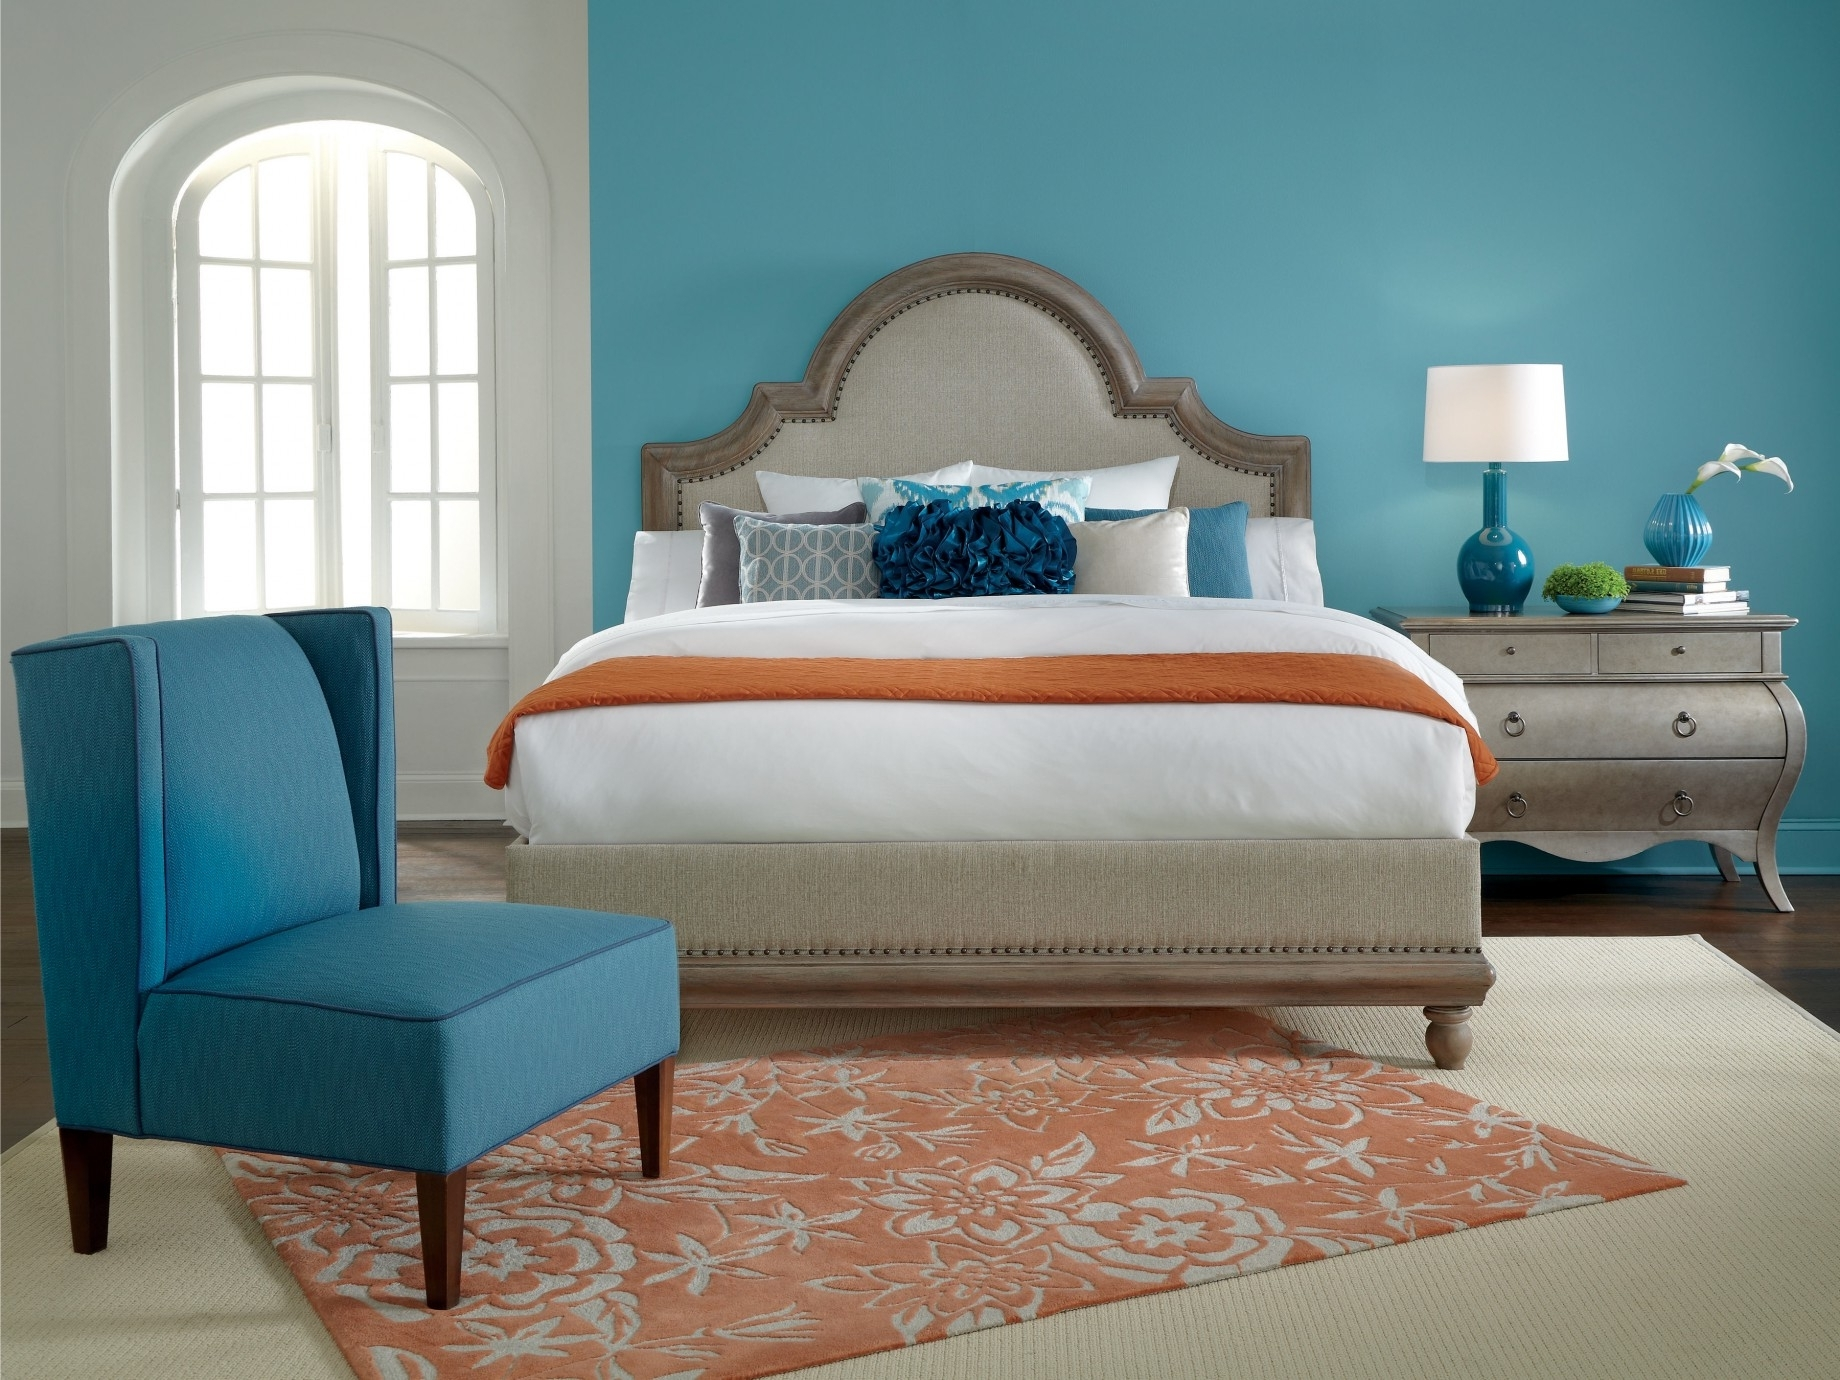 Bedroom Accent Colors 15 Inspirations Of Wall Accents Colors For Bedrooms